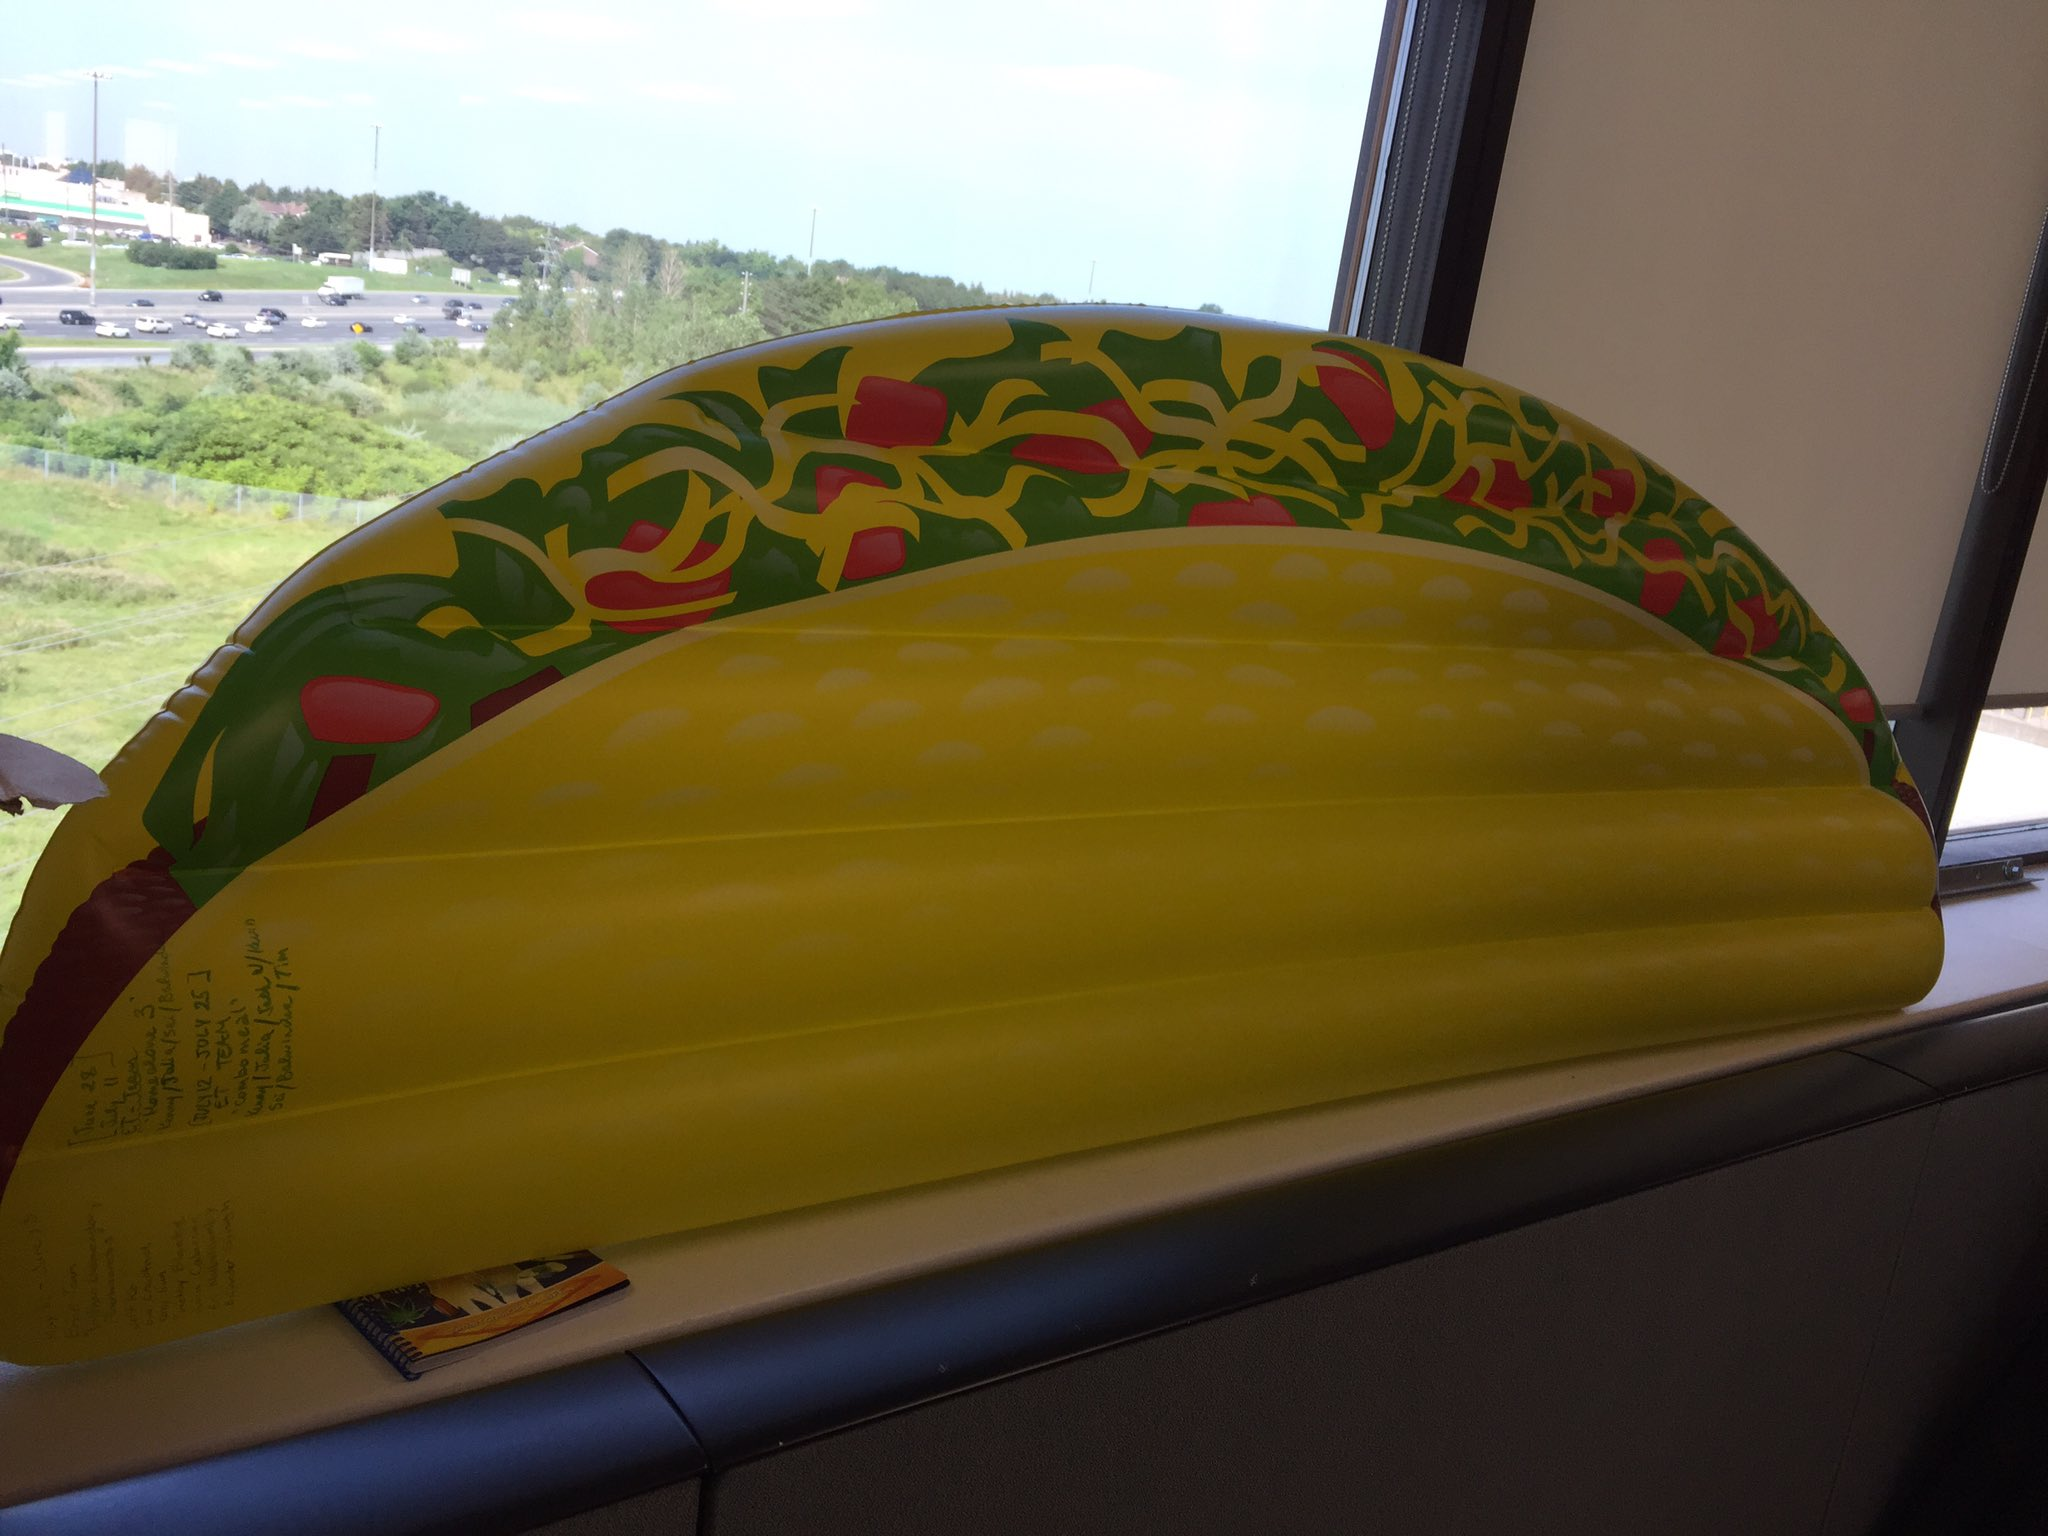 giant inflateable taco